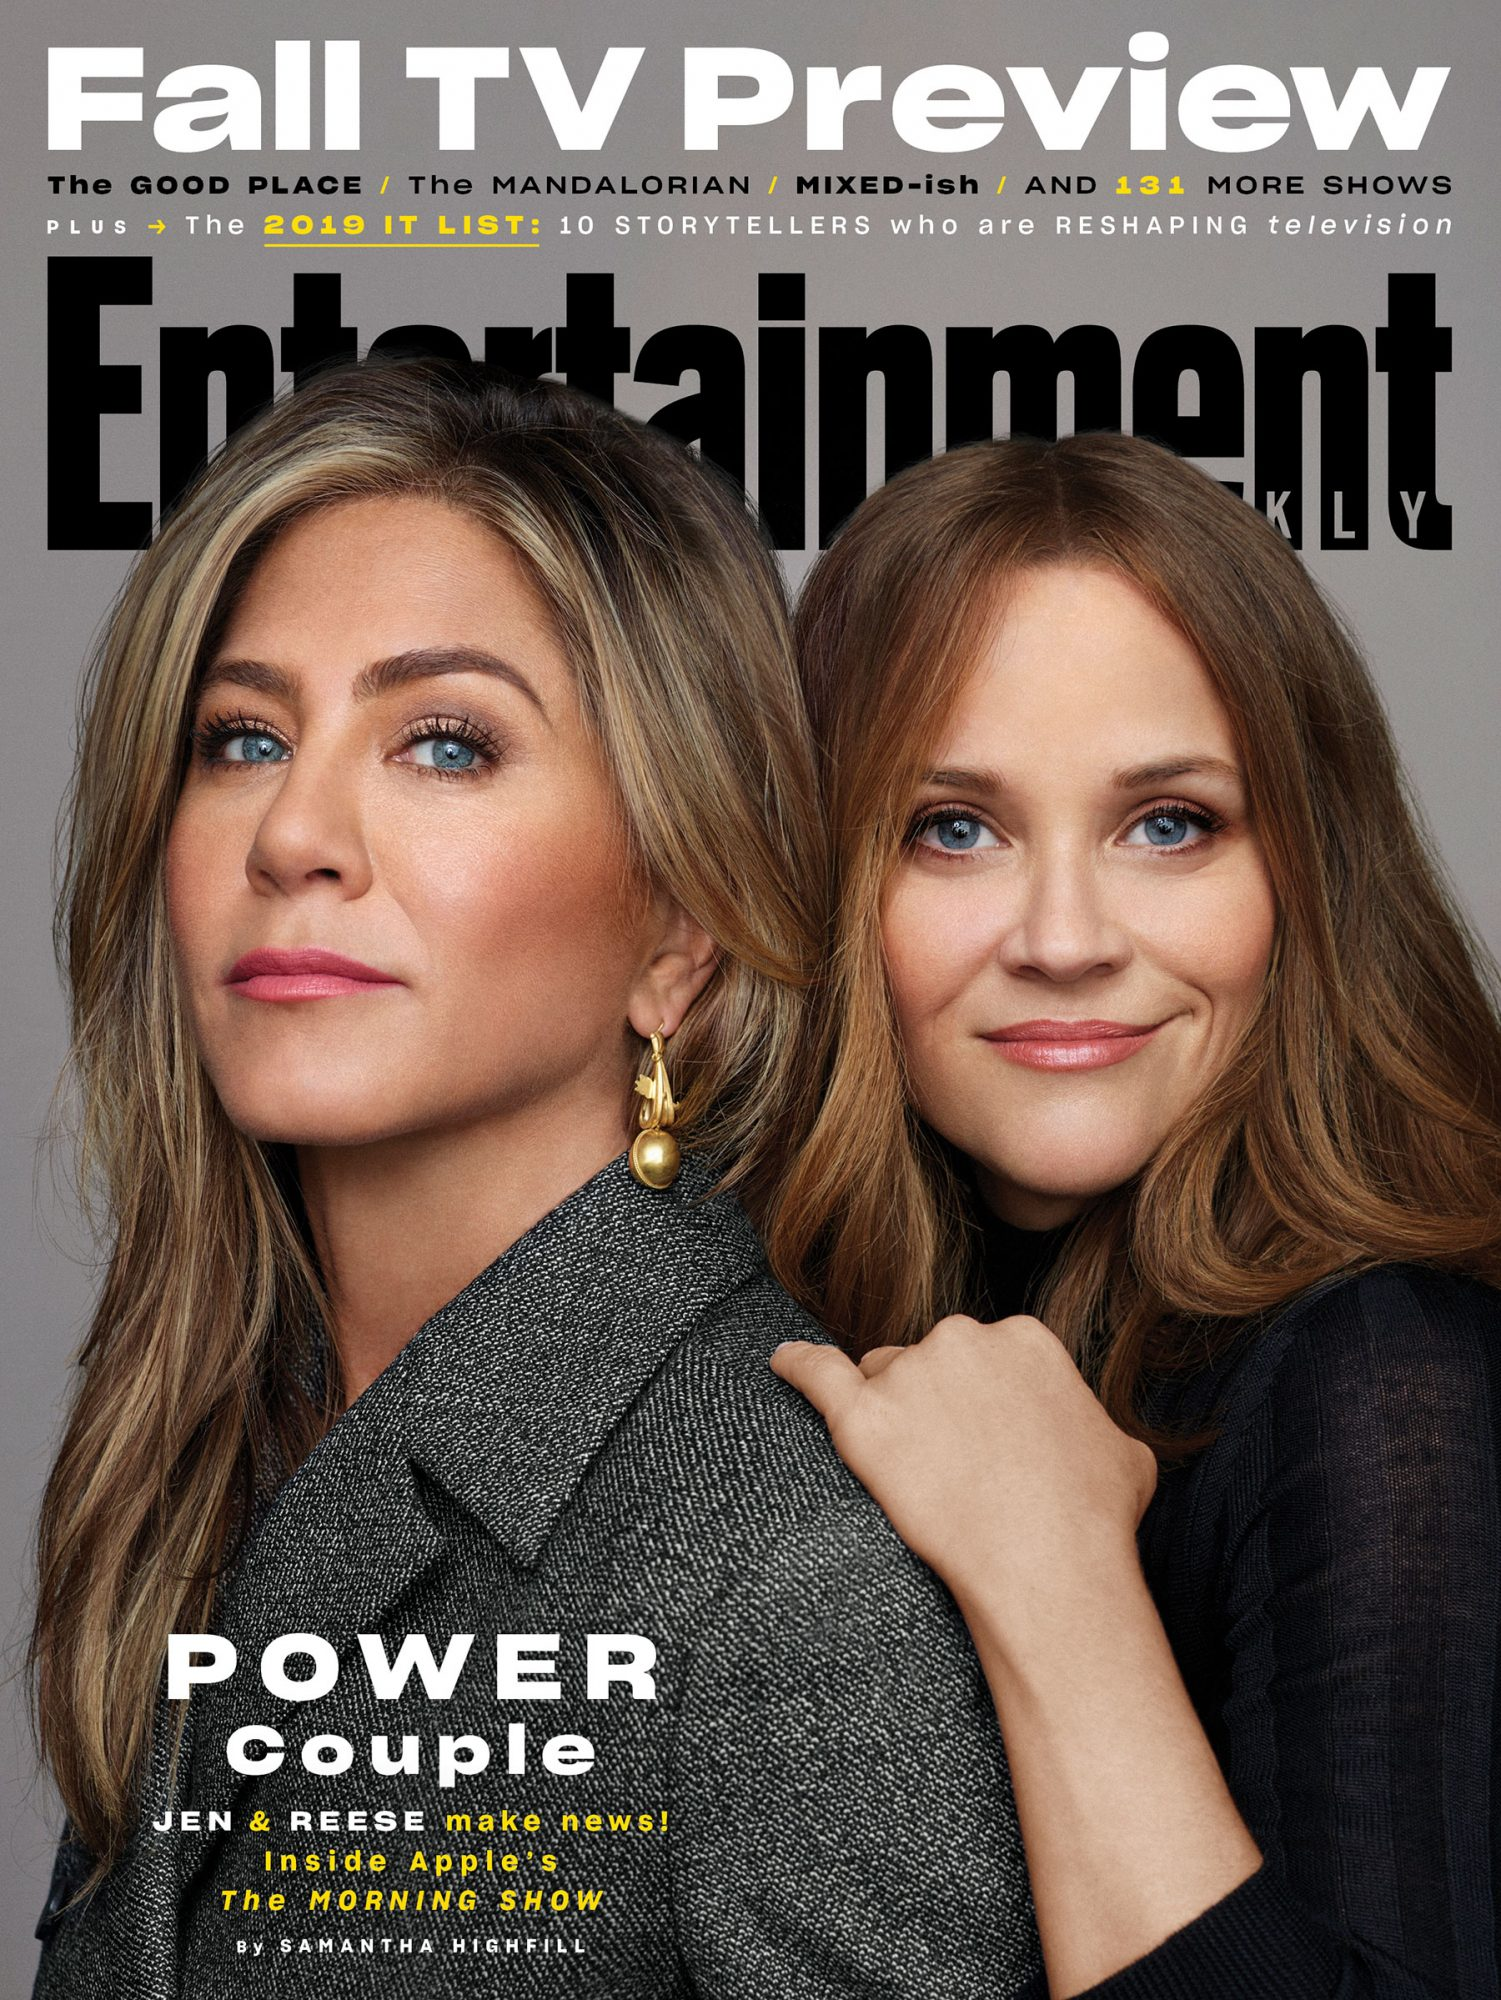 EW Cover October 2019 - The Morning Show